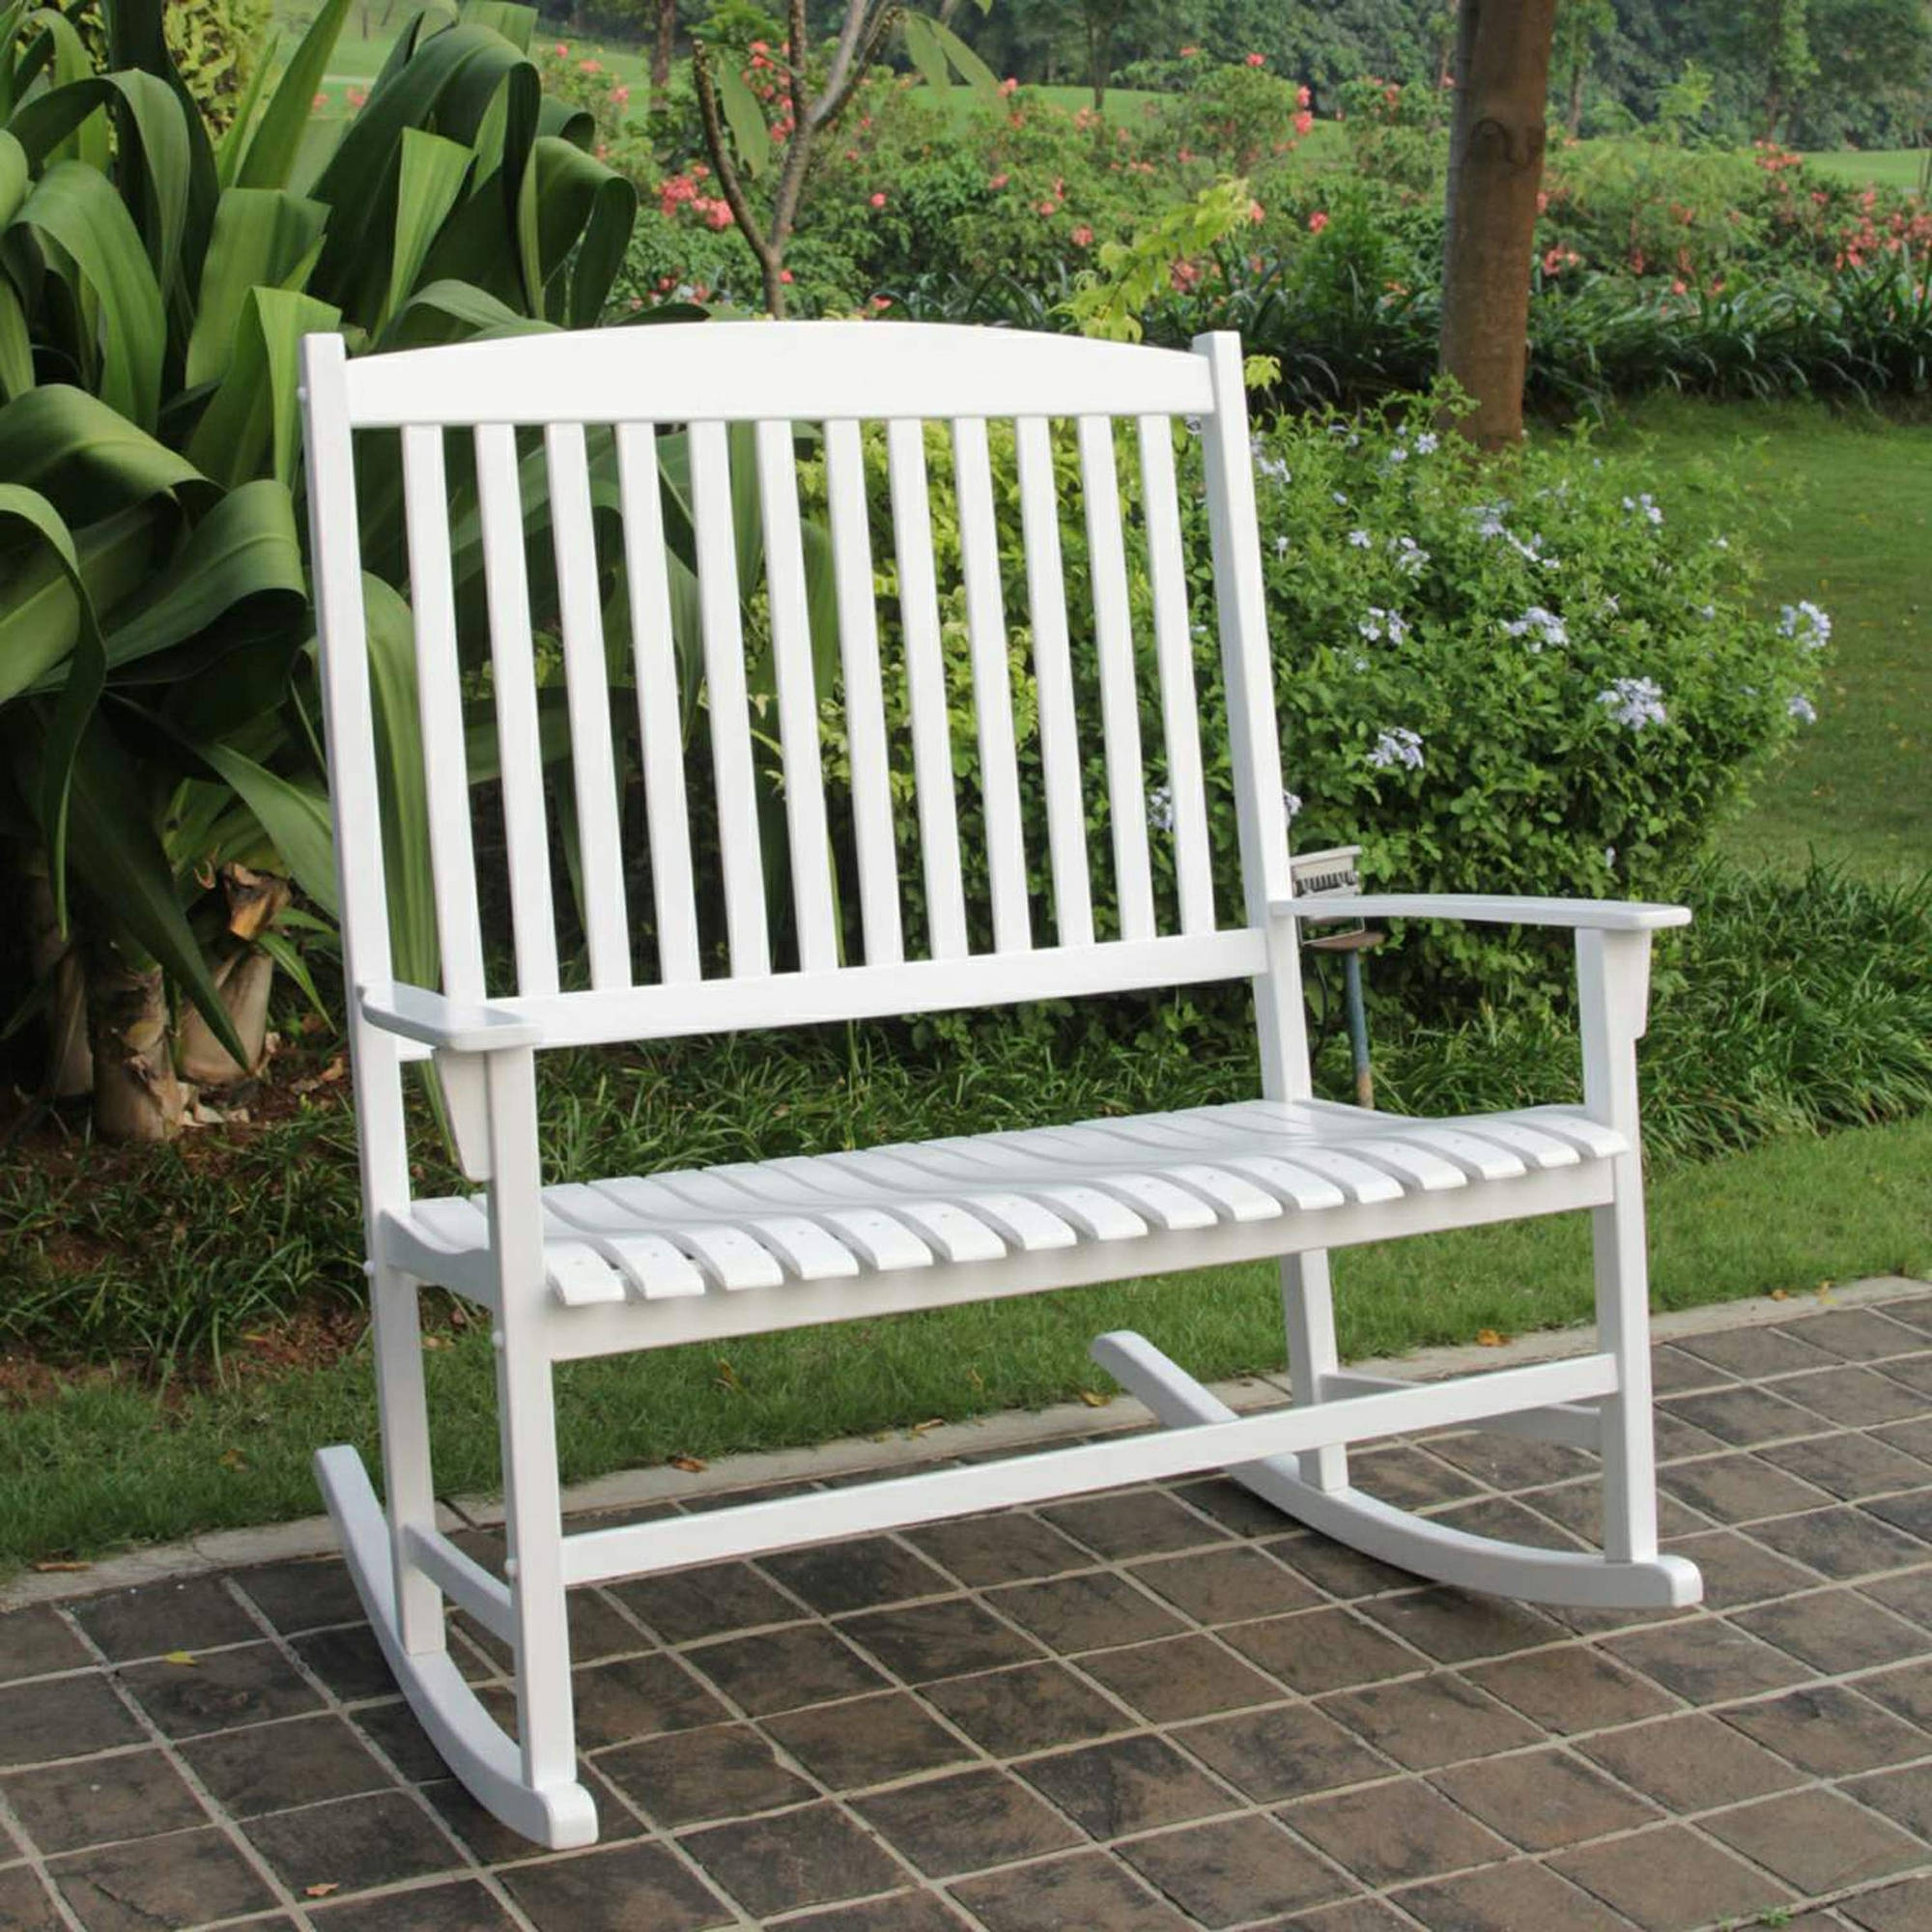 Well Known Patio Loveseat White Hardwood Outdoor Rocking Chair For 2 For Patio Rocking Chairs (View 19 of 20)